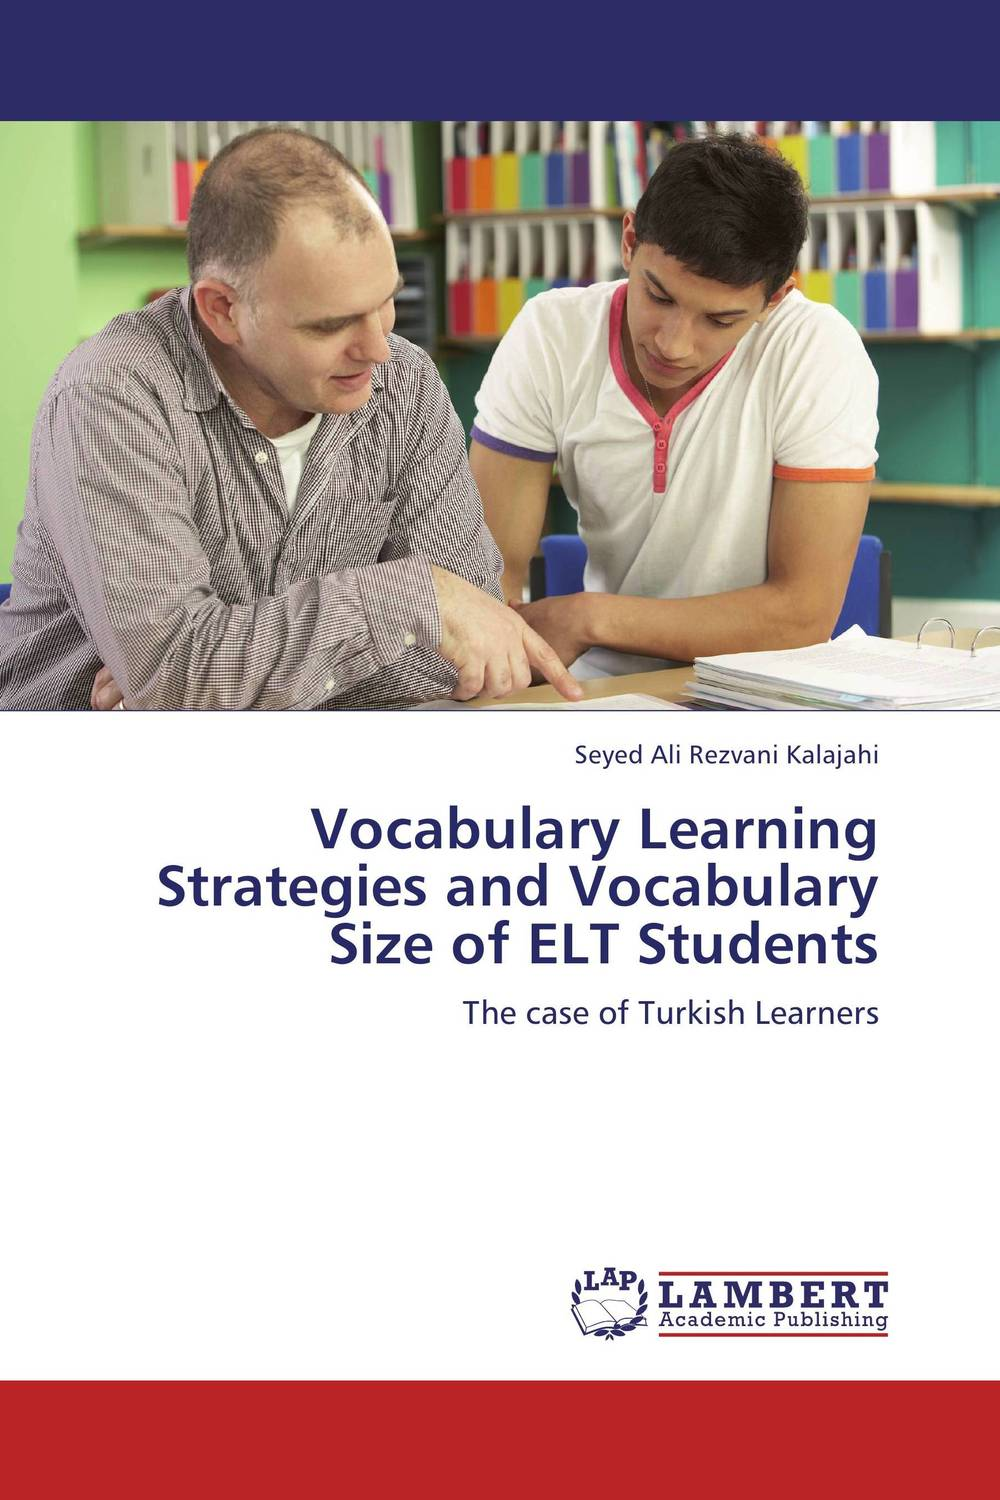 Vocabulary Learning Strategies and Vocabulary Size of ELT Students elt and development of communicative abilities of university students